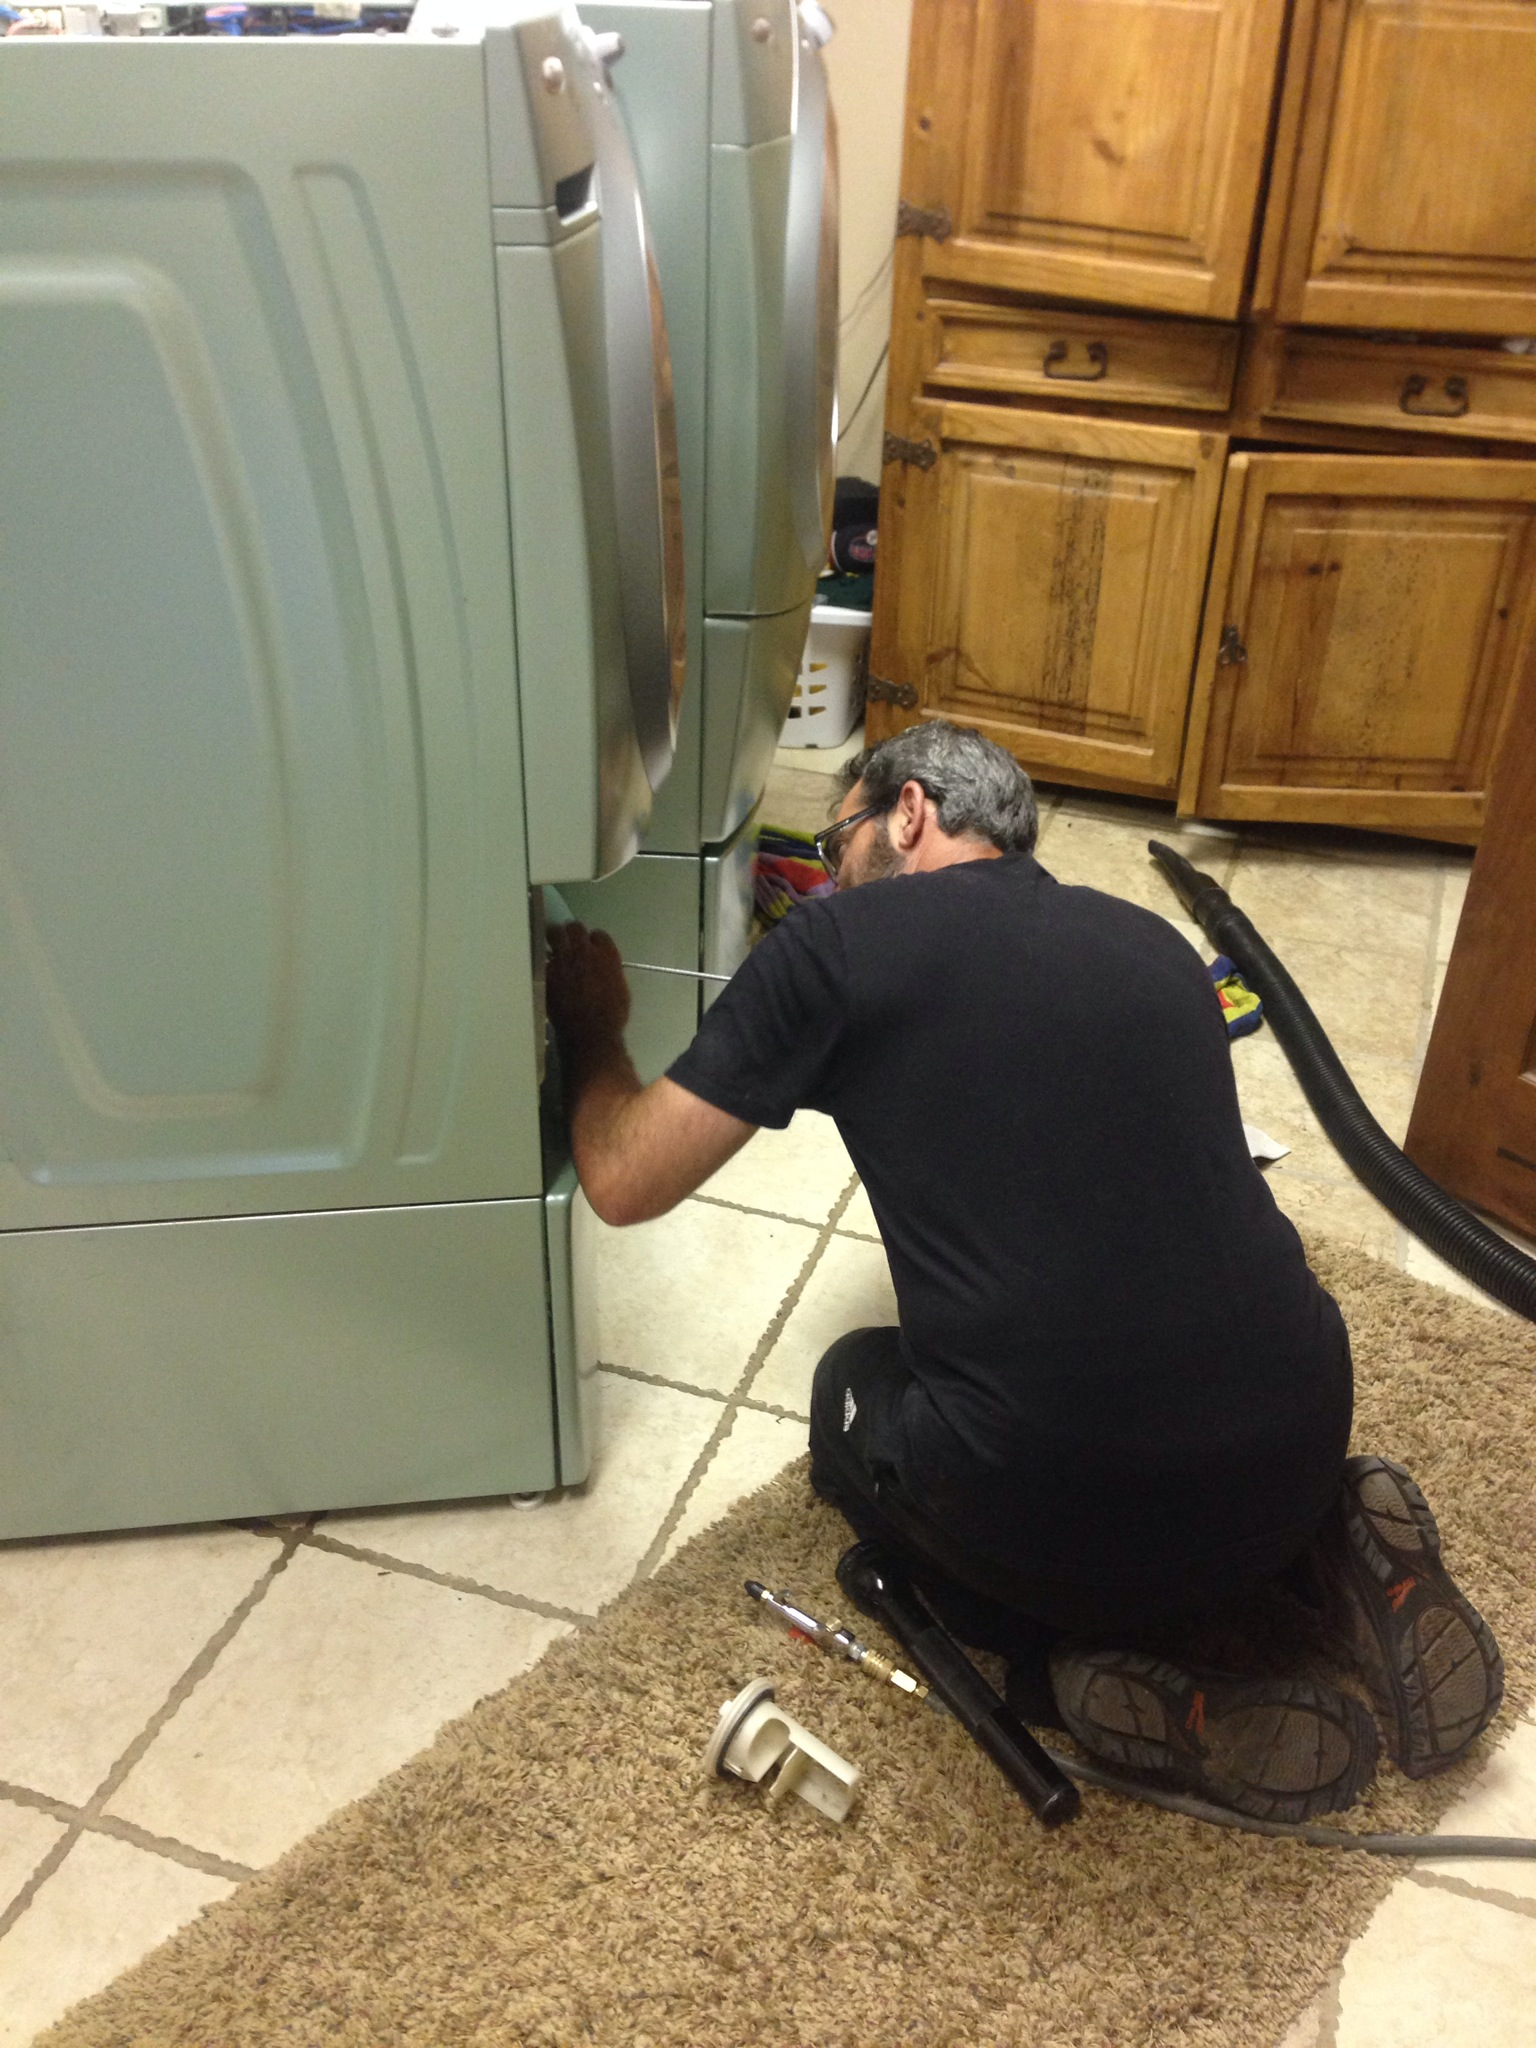 How To Fix My Washing Machine How To Fix Your Washing Machine Wendy Damonte Eat Play And